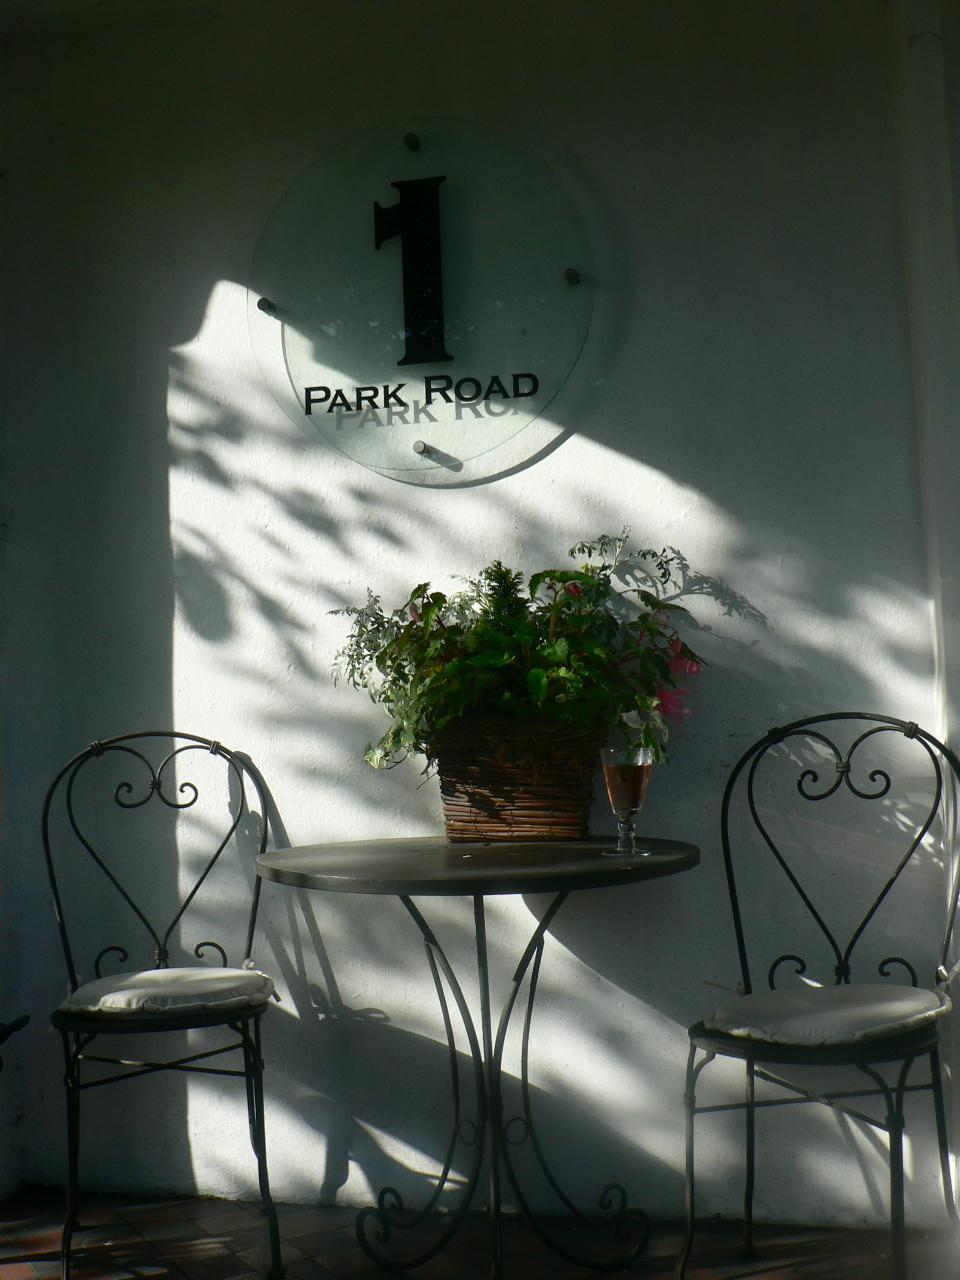 1 Park Road Bed and Breakfast - Special offers and discounts